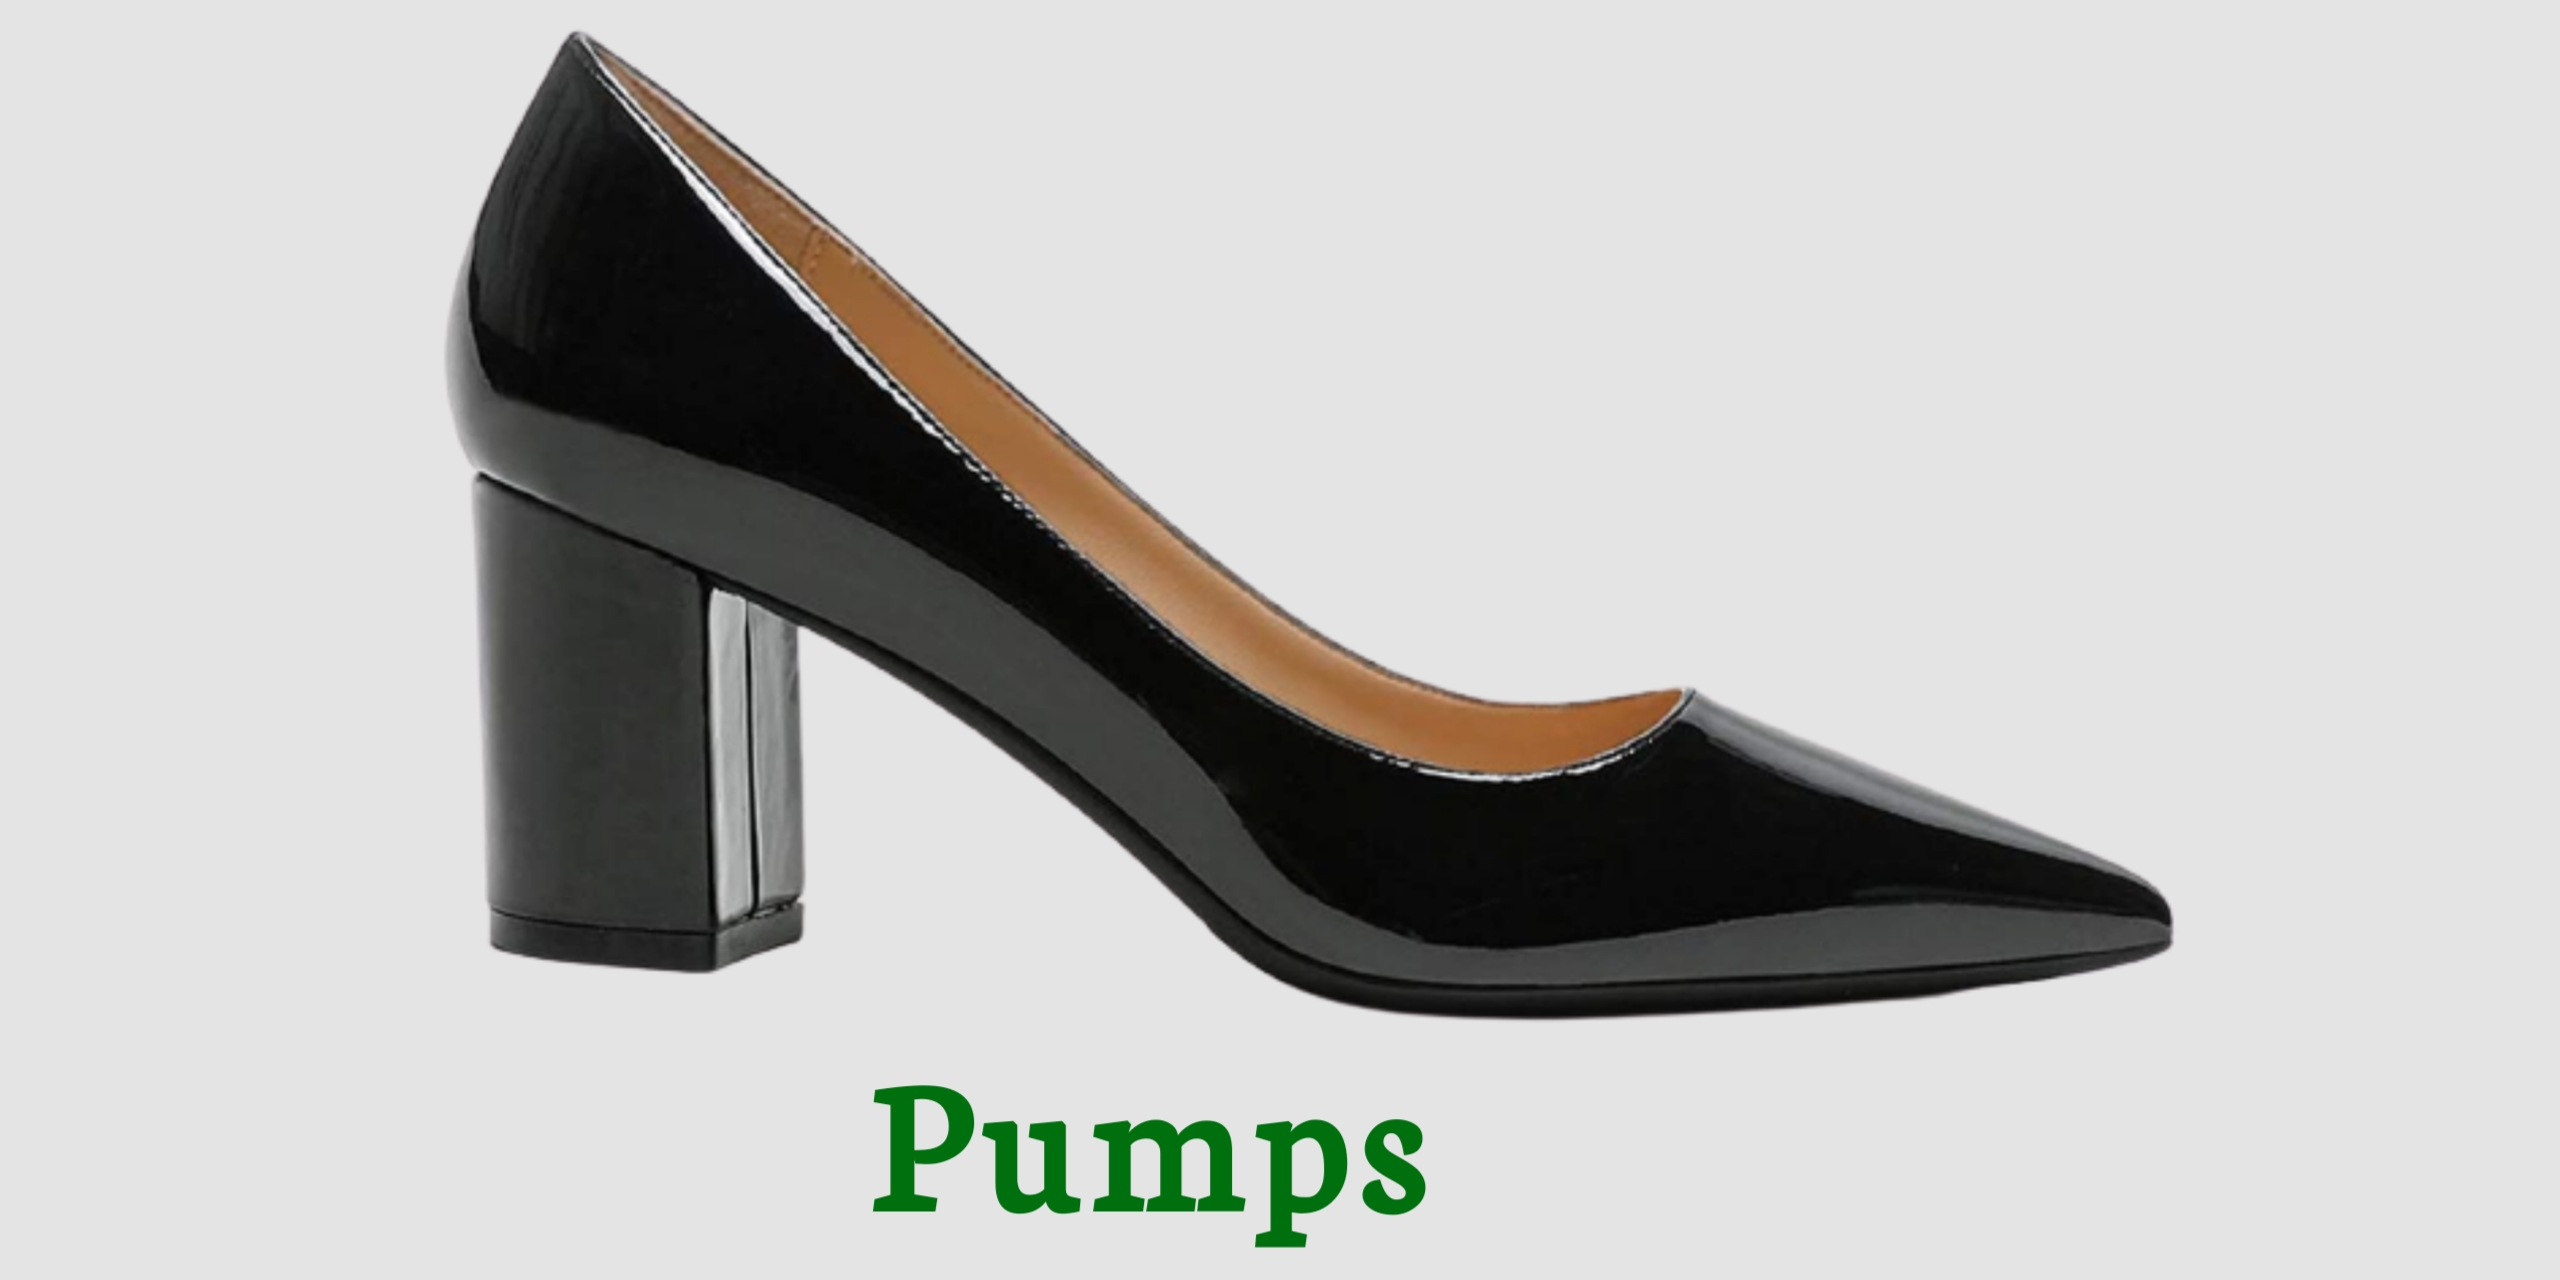 Stiletto vs Pumps vs Kitten Heels